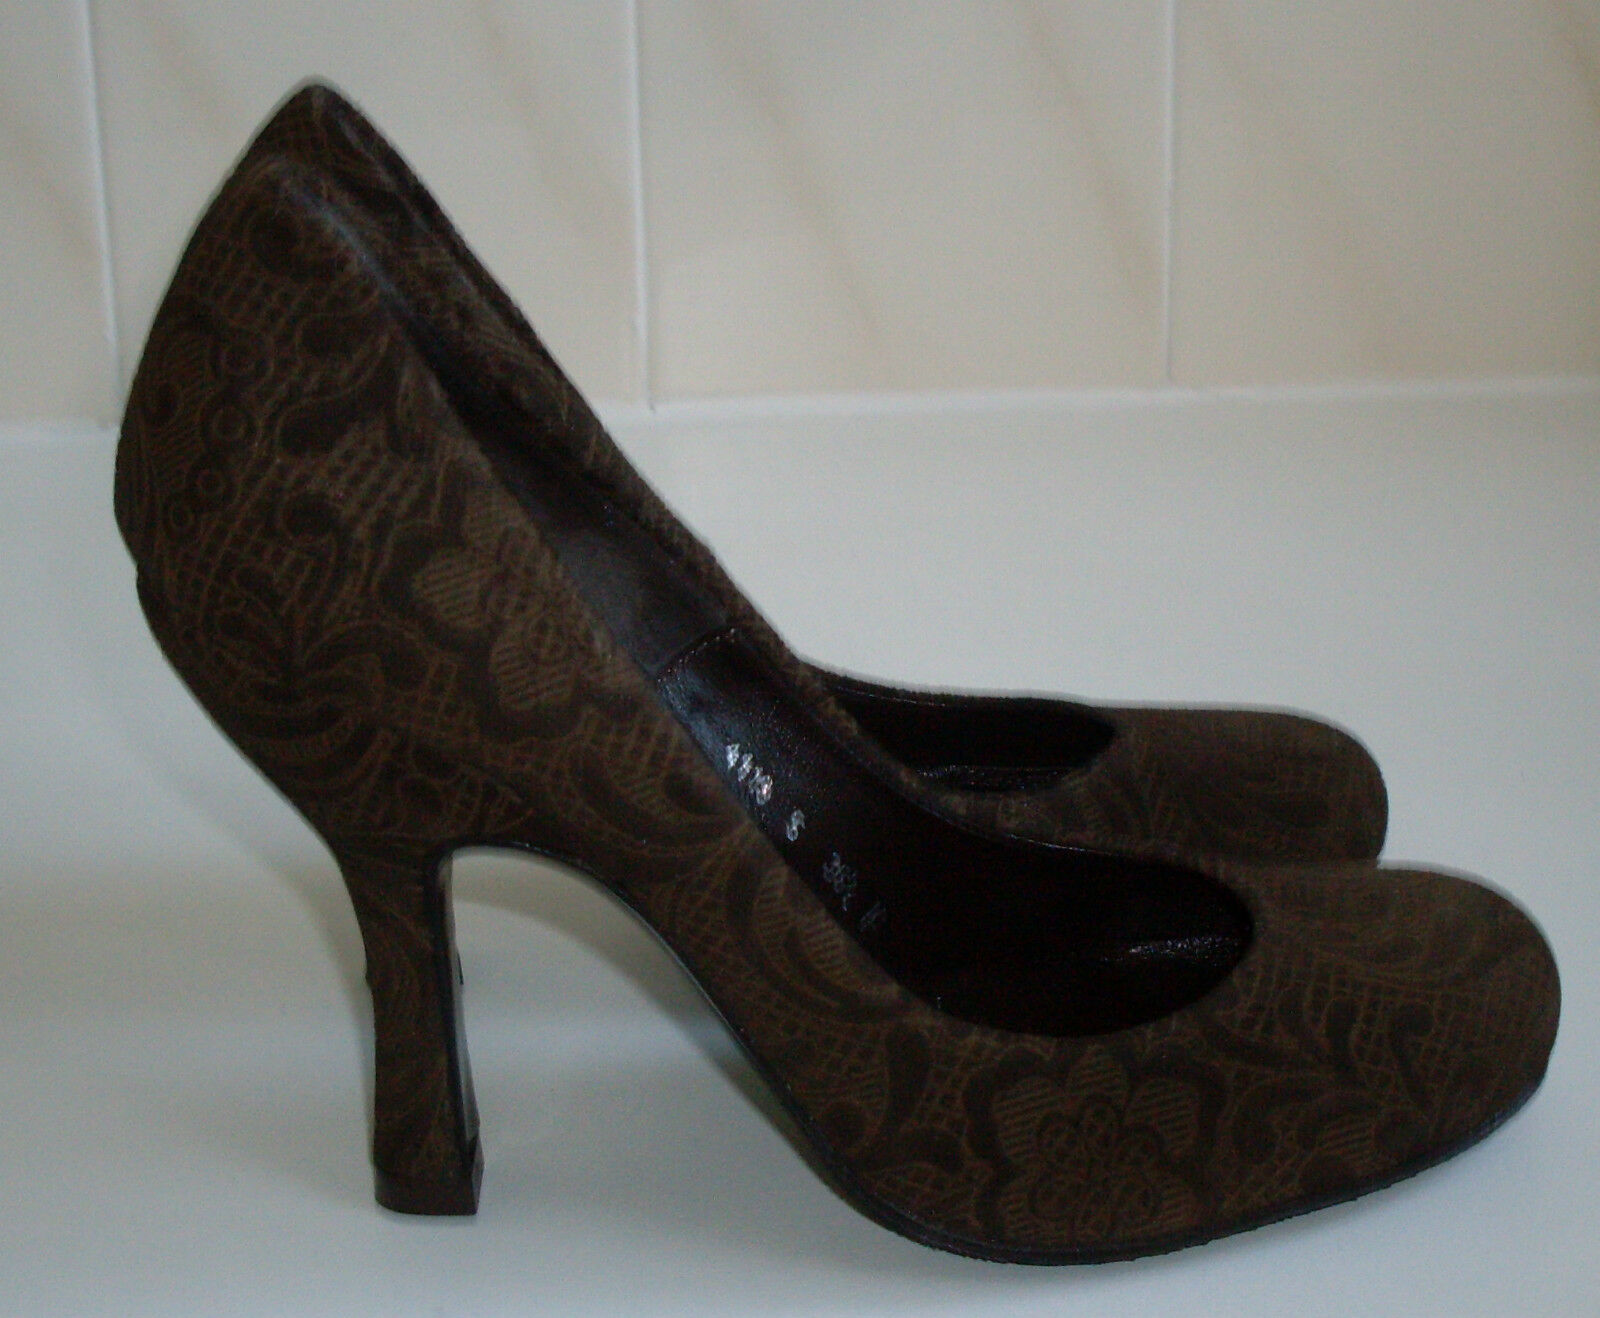 REBECA SANVER Brown Court shoes Size US 5.5 RRP